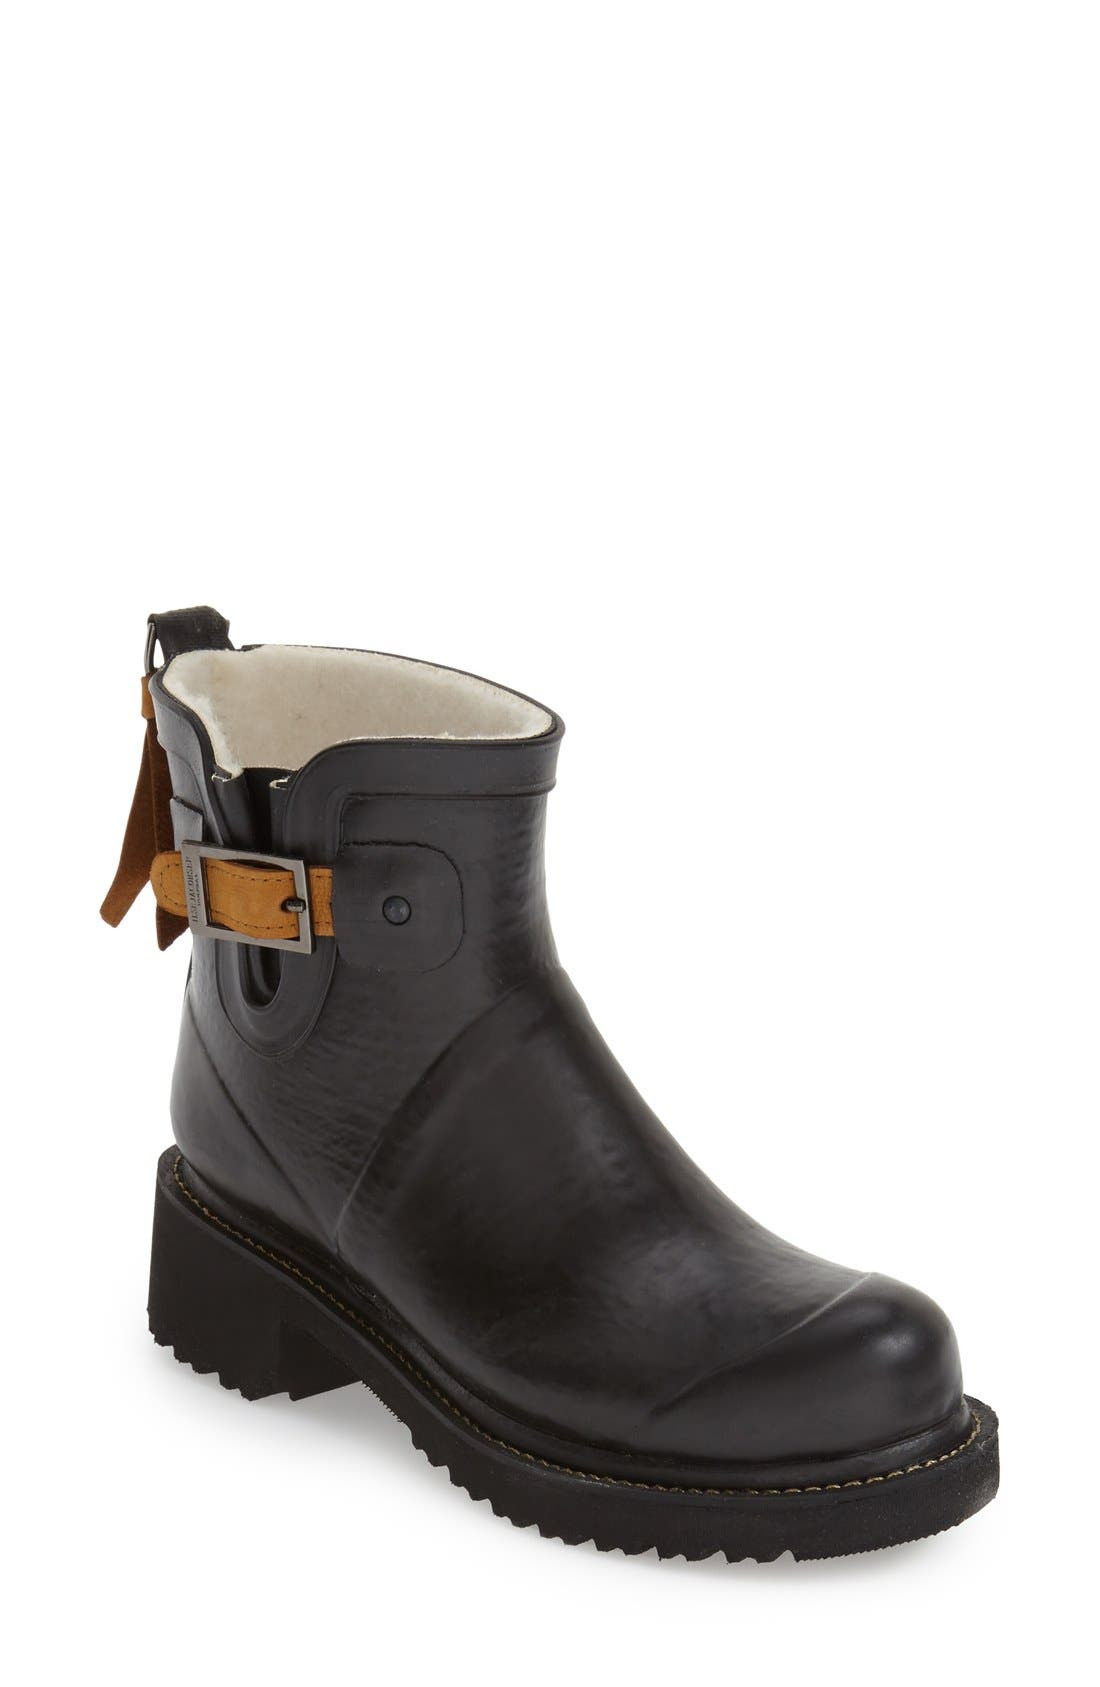 ILSE JACOBSEN Short Waterproof Rubber Boot in Black